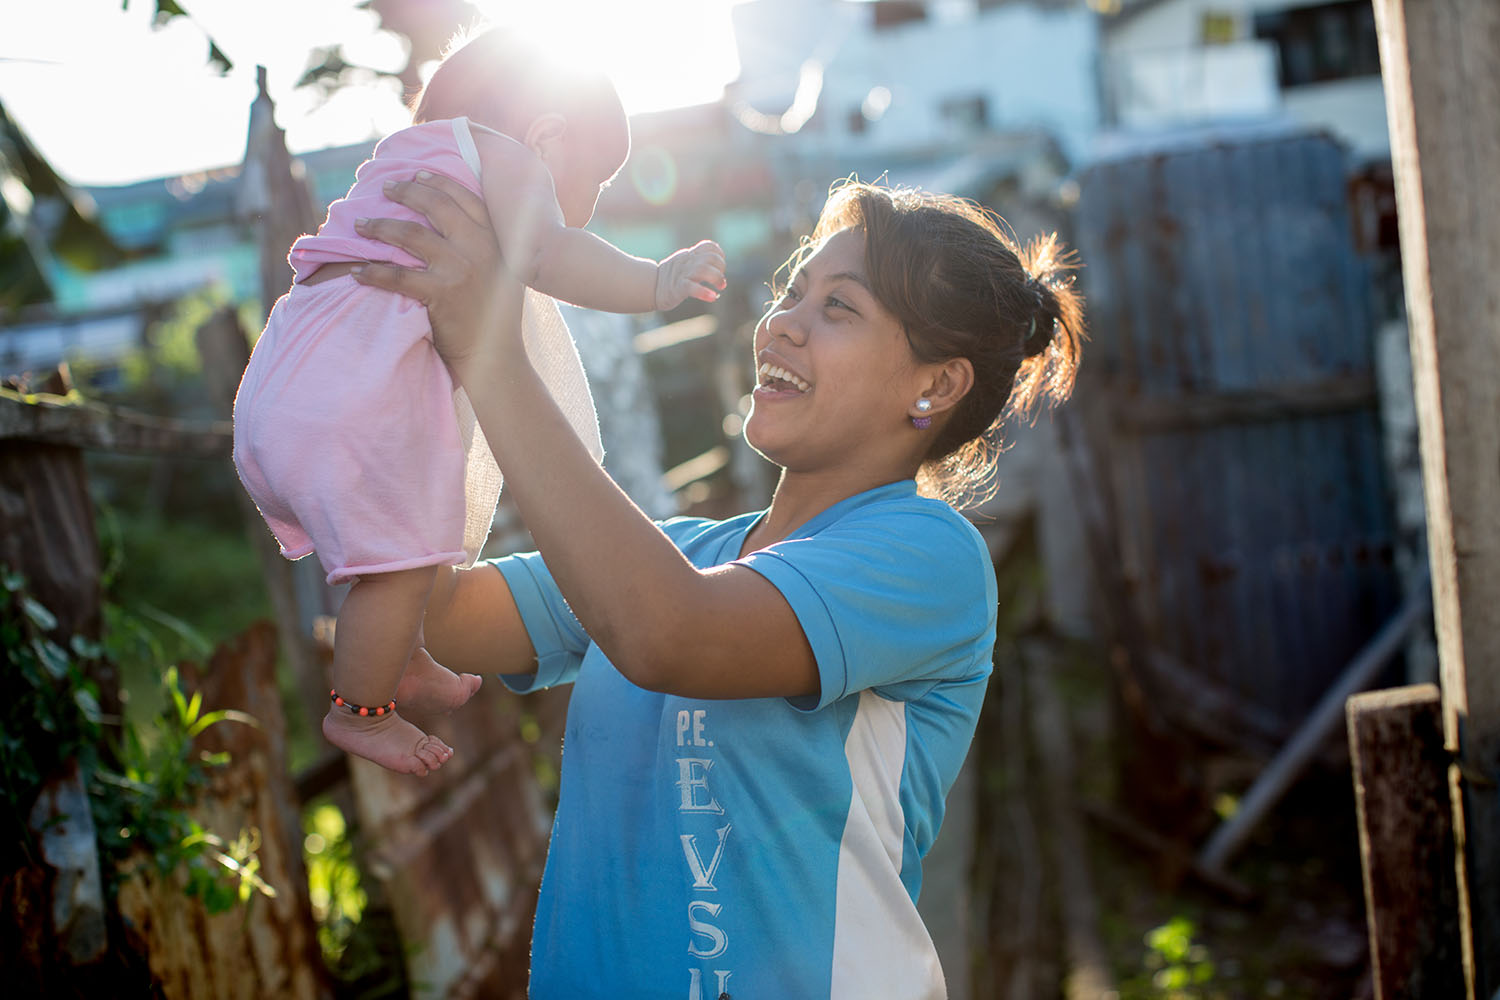 UNICEF trip to Tacloban, in the Philipines to report on their response to Typhoon Yolanda, March 2016